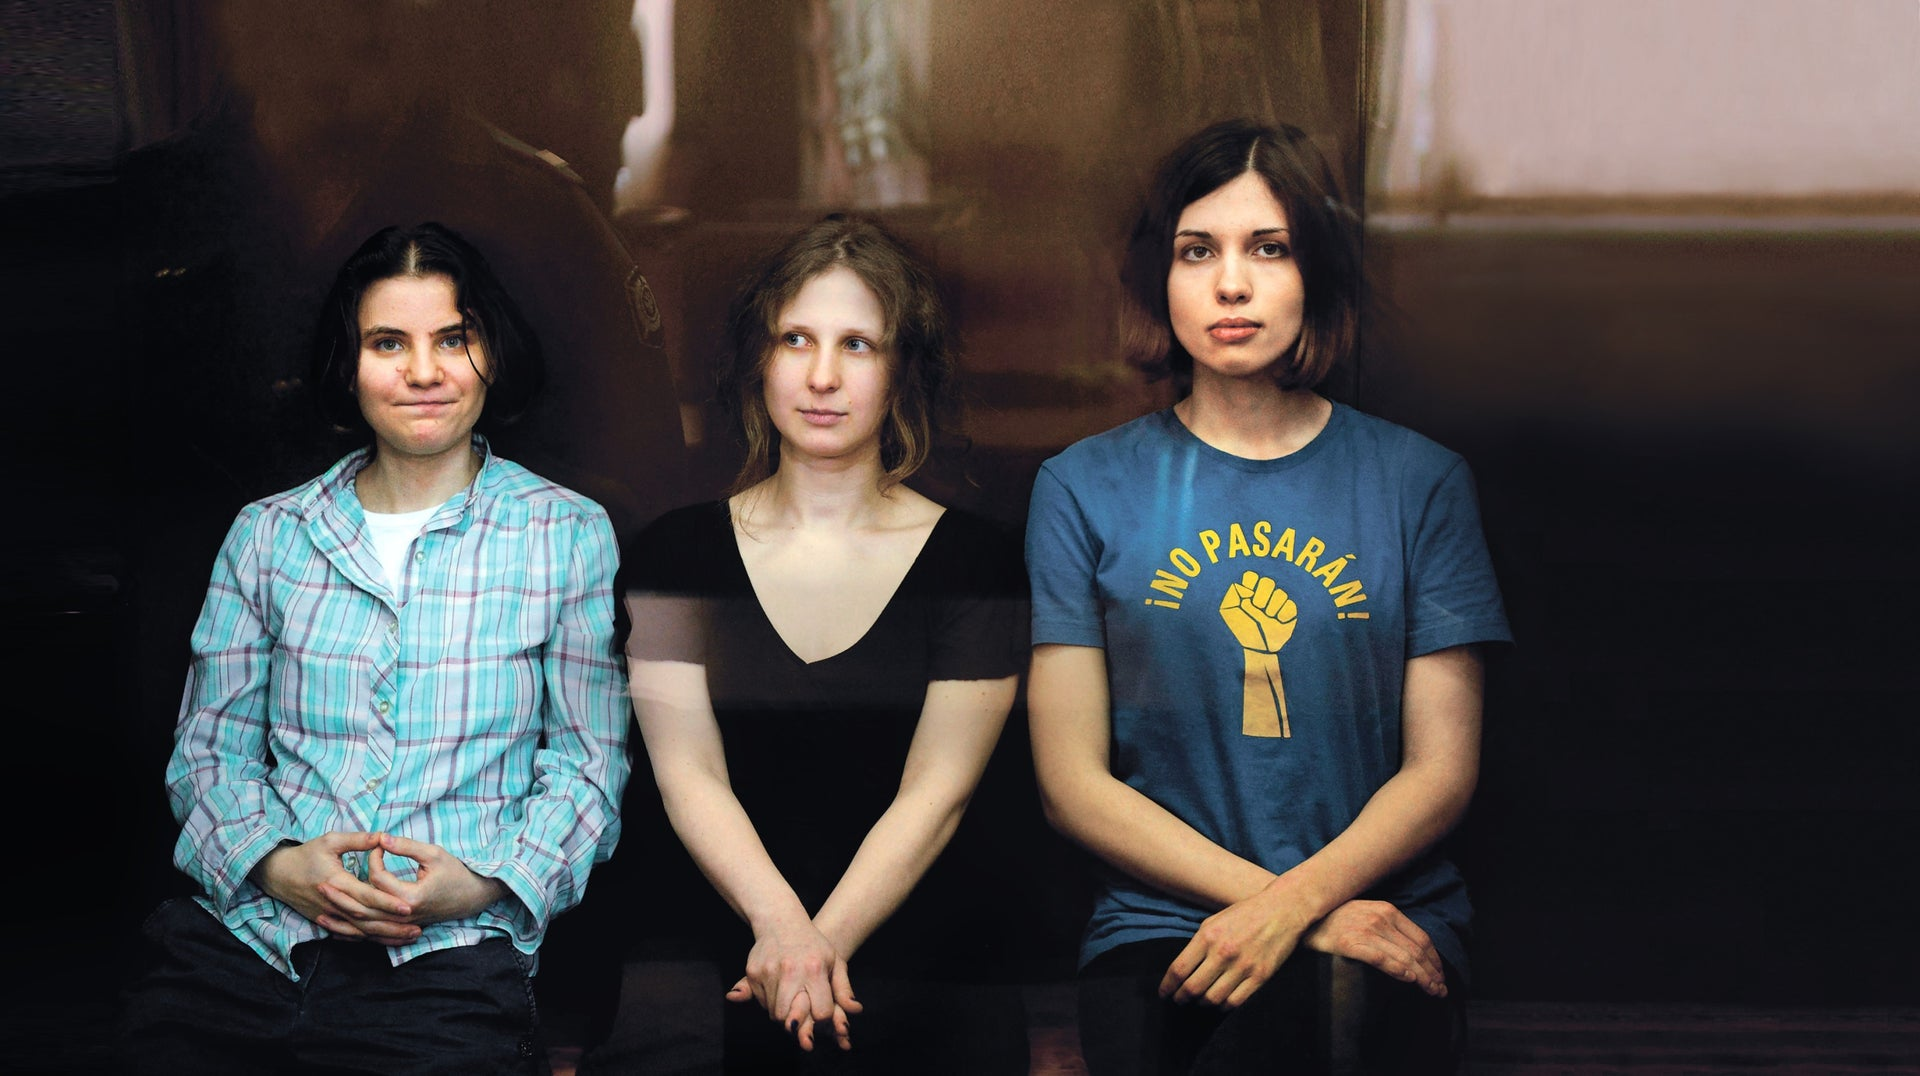 Members of Pussy Riot, Nadezhda Tolokonnikova (right), Maria Alyokhina (center) and Yekaterina Samutsevich (left) sit in a glass-walled cage during a court hearing in Moscow, Agust 17, 2012.